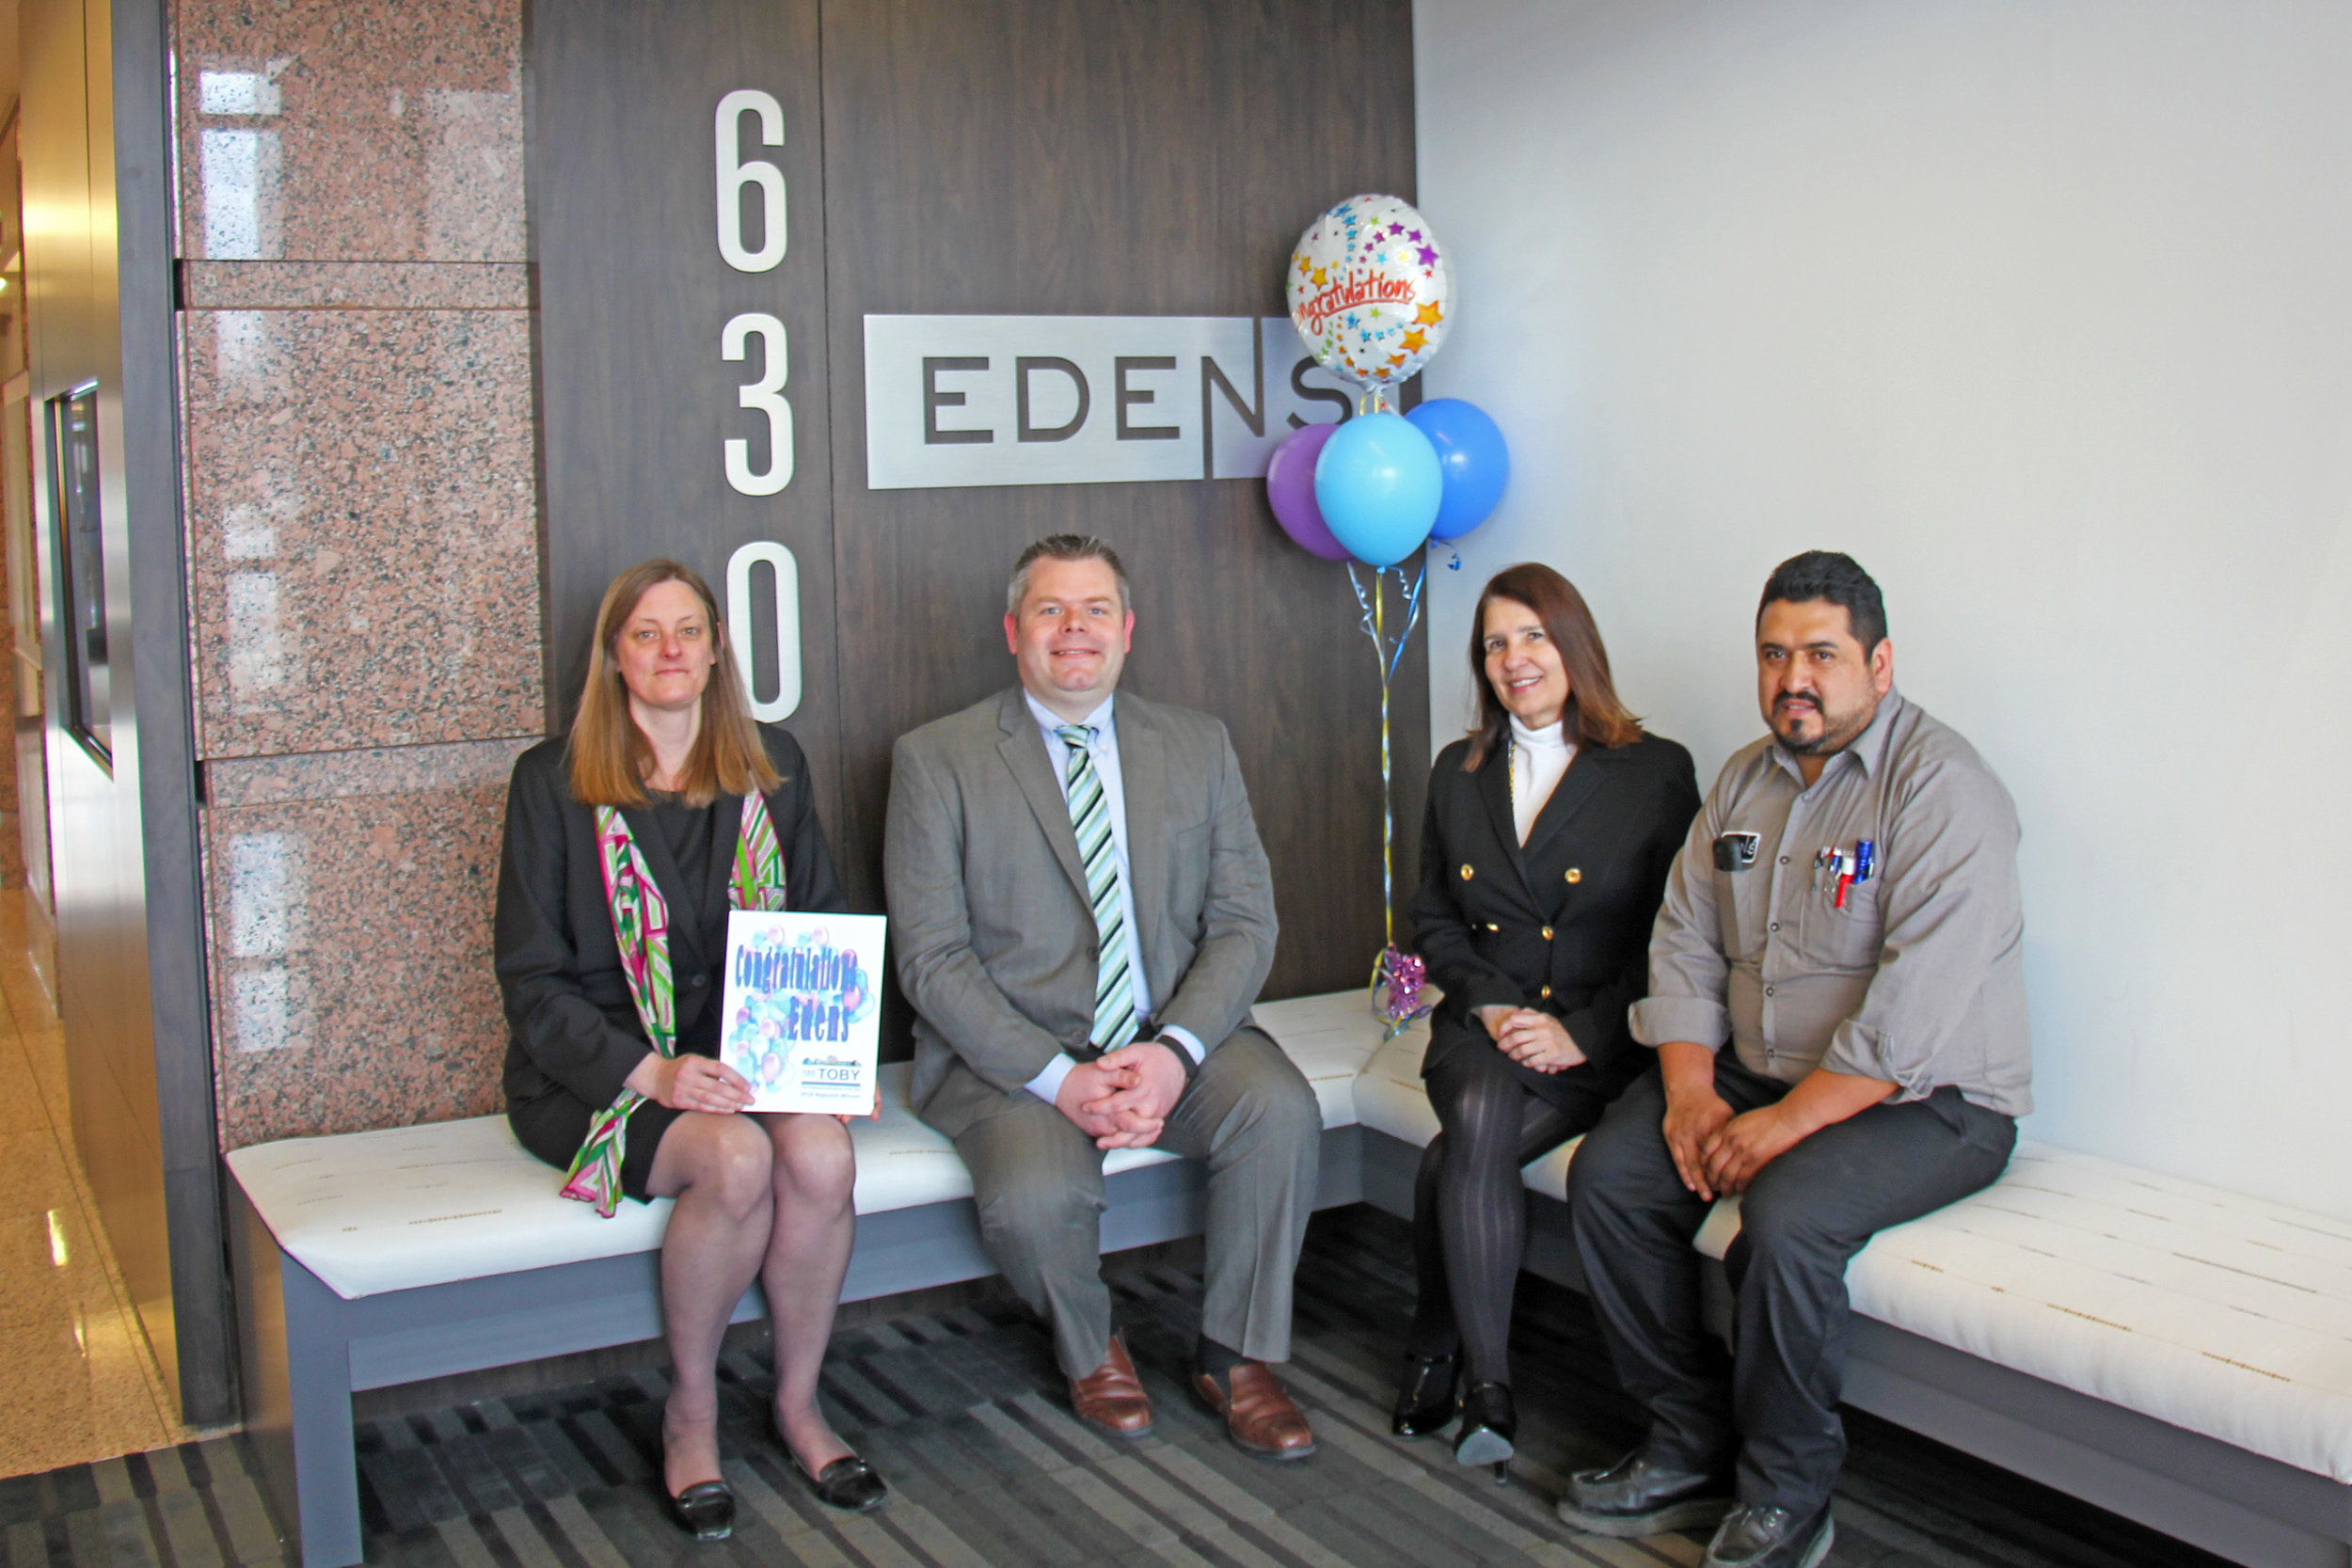 Edens Property Management Team (from left to right): Elizabeth O'Connor, Tom Murphy, Lynn Zbierski, Rudy Ricardo